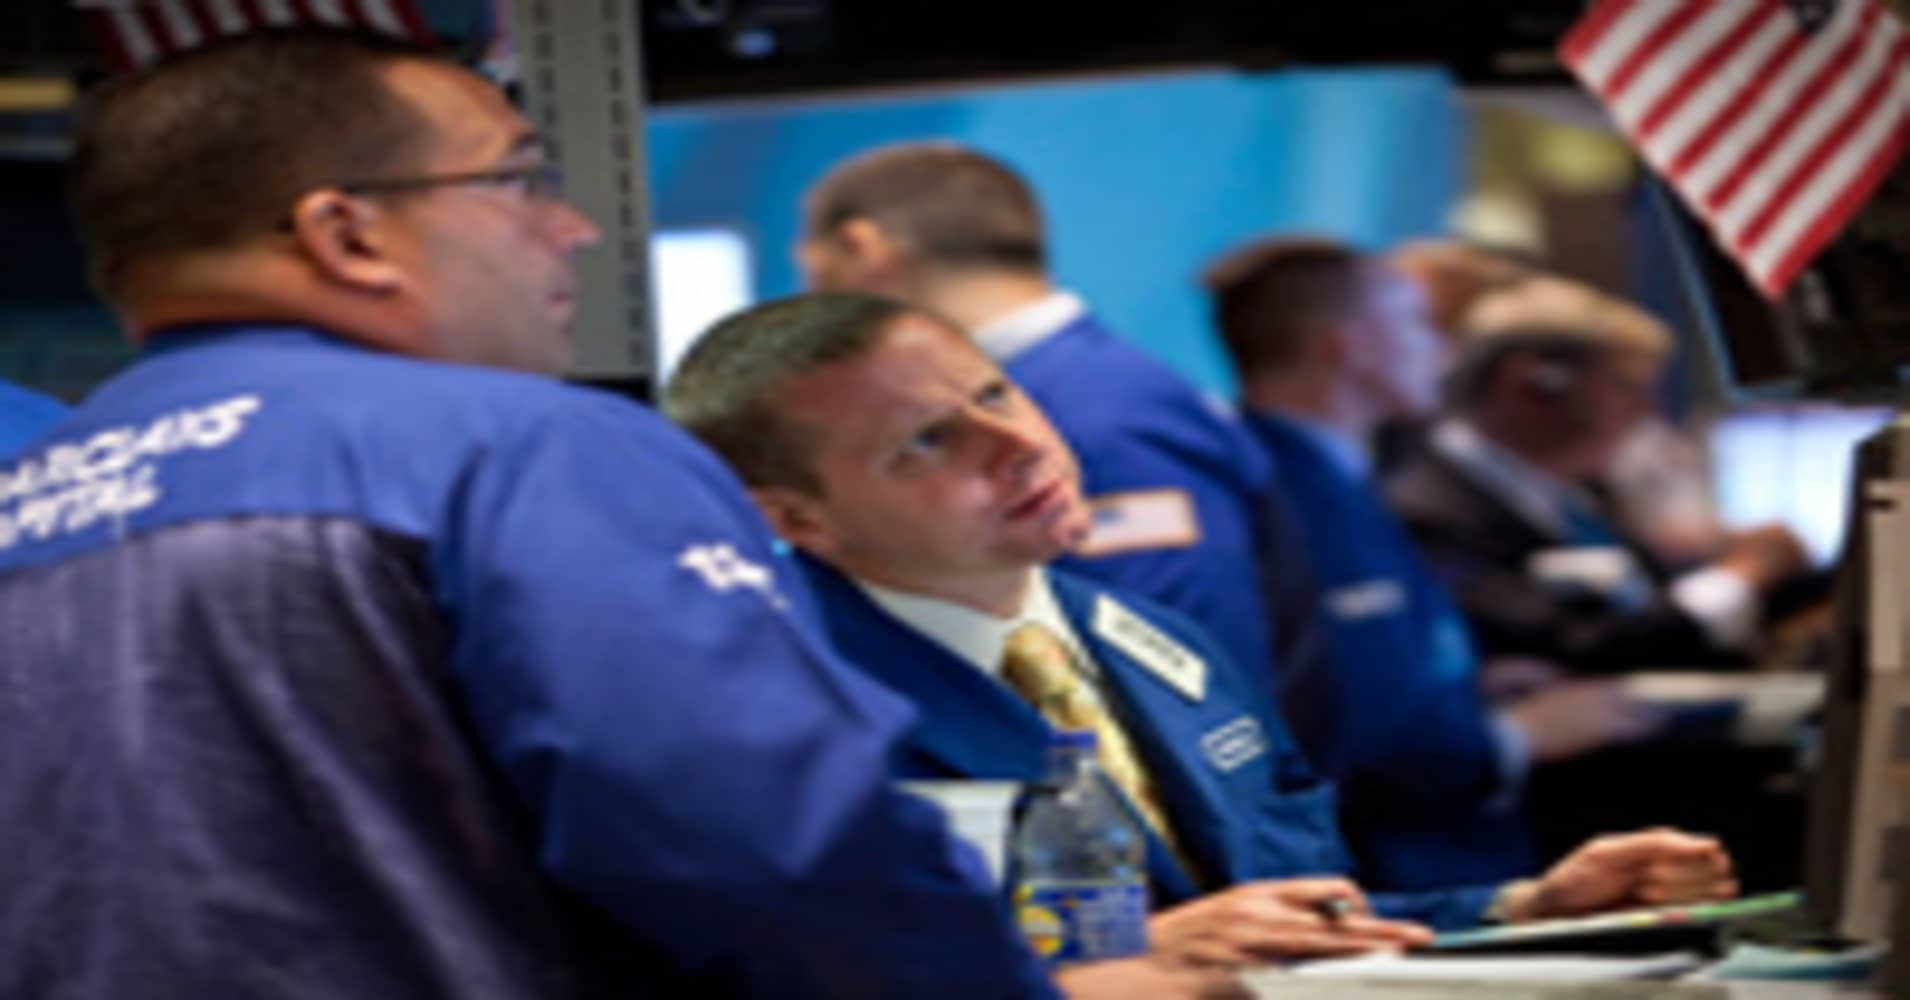 Market Circuit Breakers Cnbc Explains How Do Work In The Stock Markets